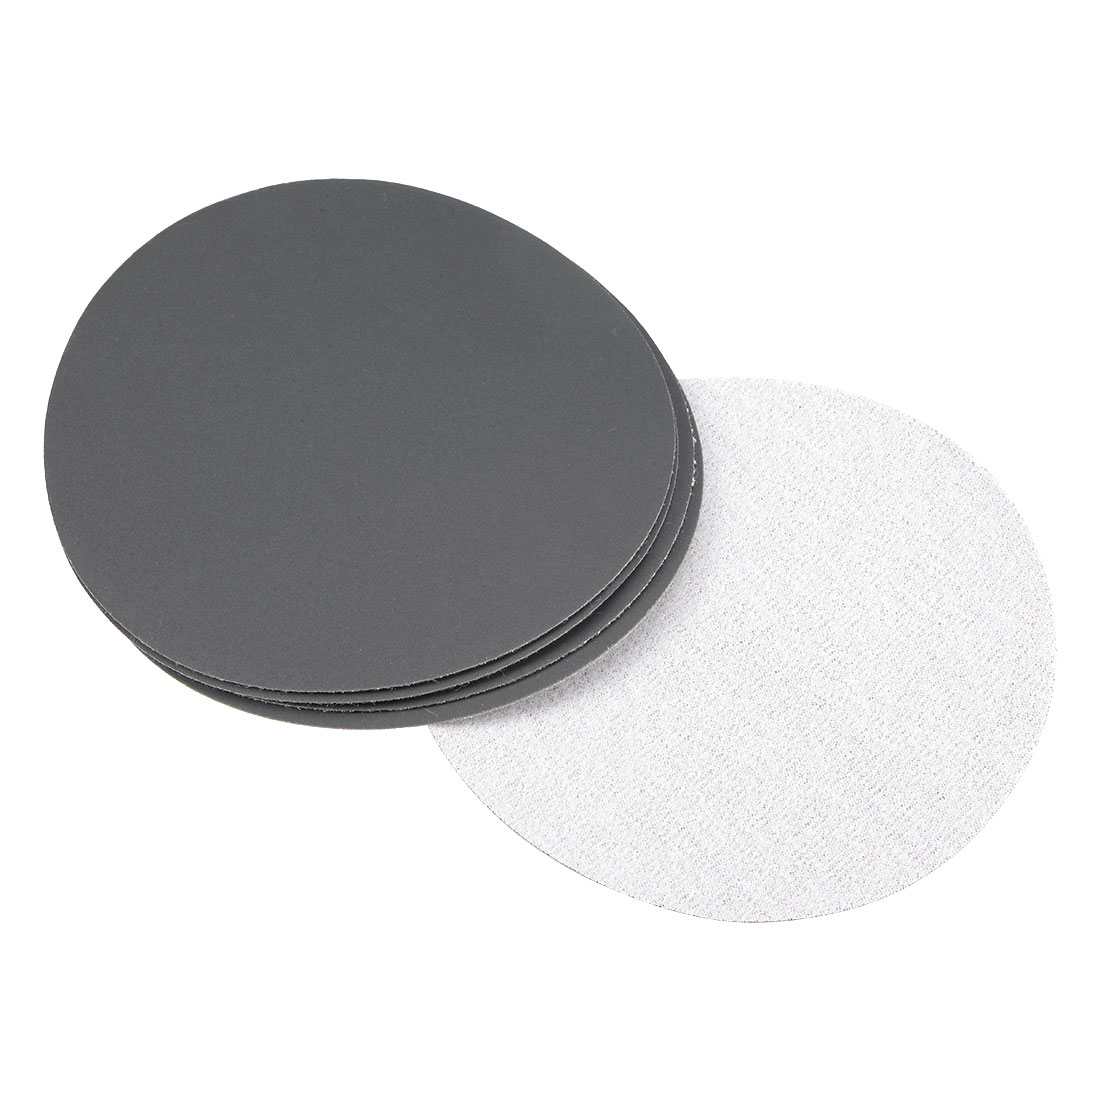 5 inch Wet Dry Discs 800 Grit Hook and Loop Sanding Disc Silicon Carbide 5pcs